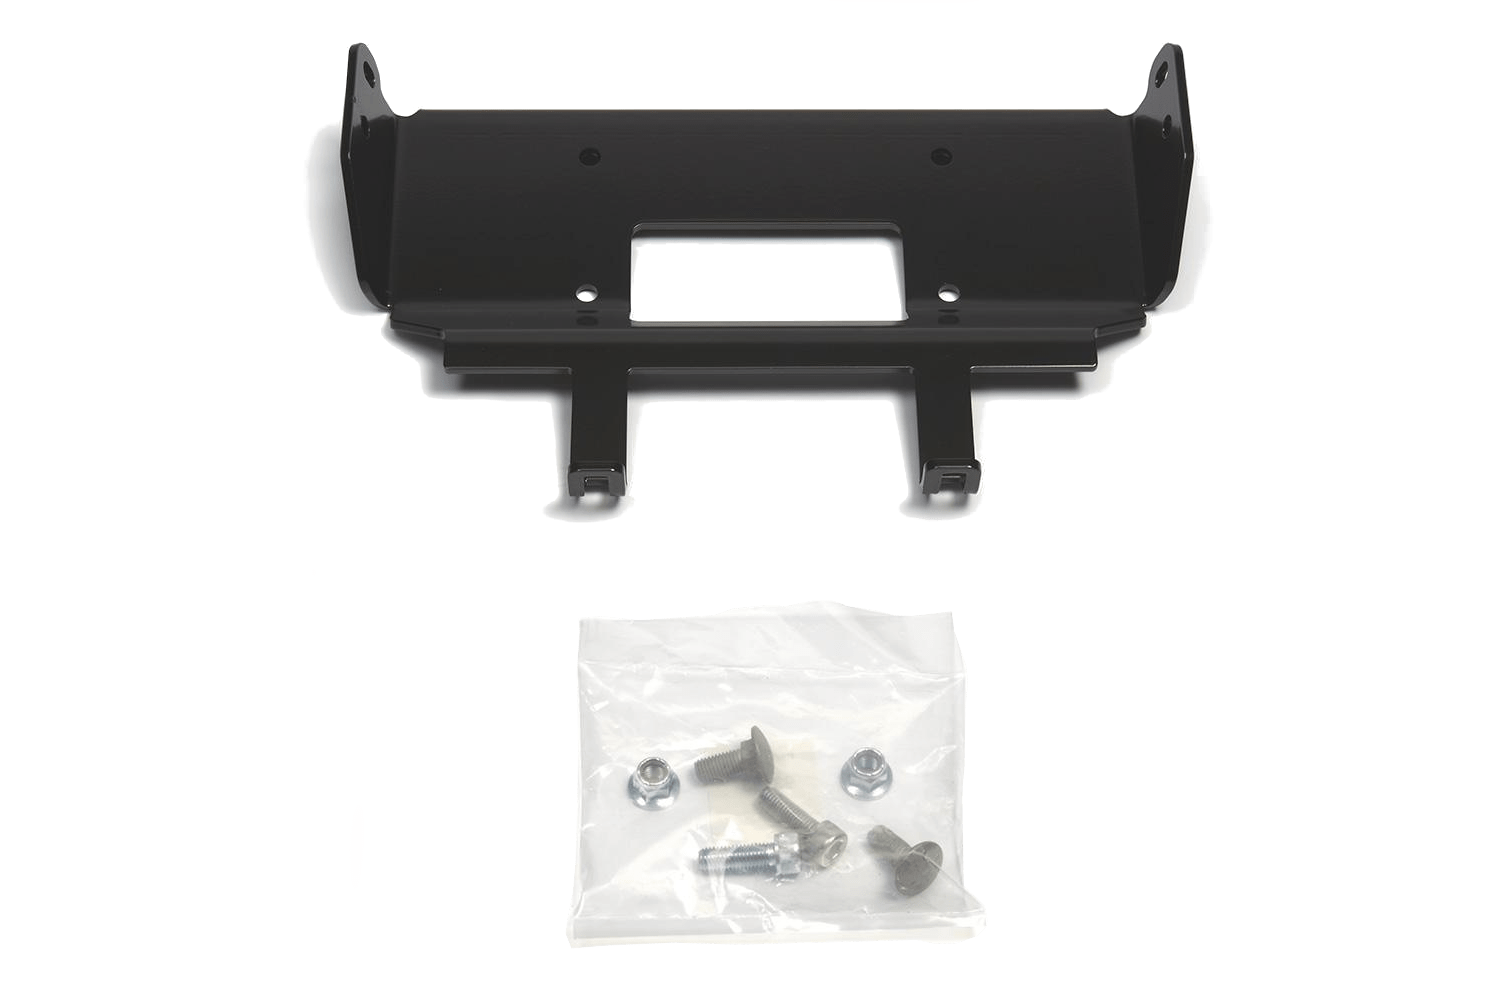 warn powersports arctic cat bumpers 93790